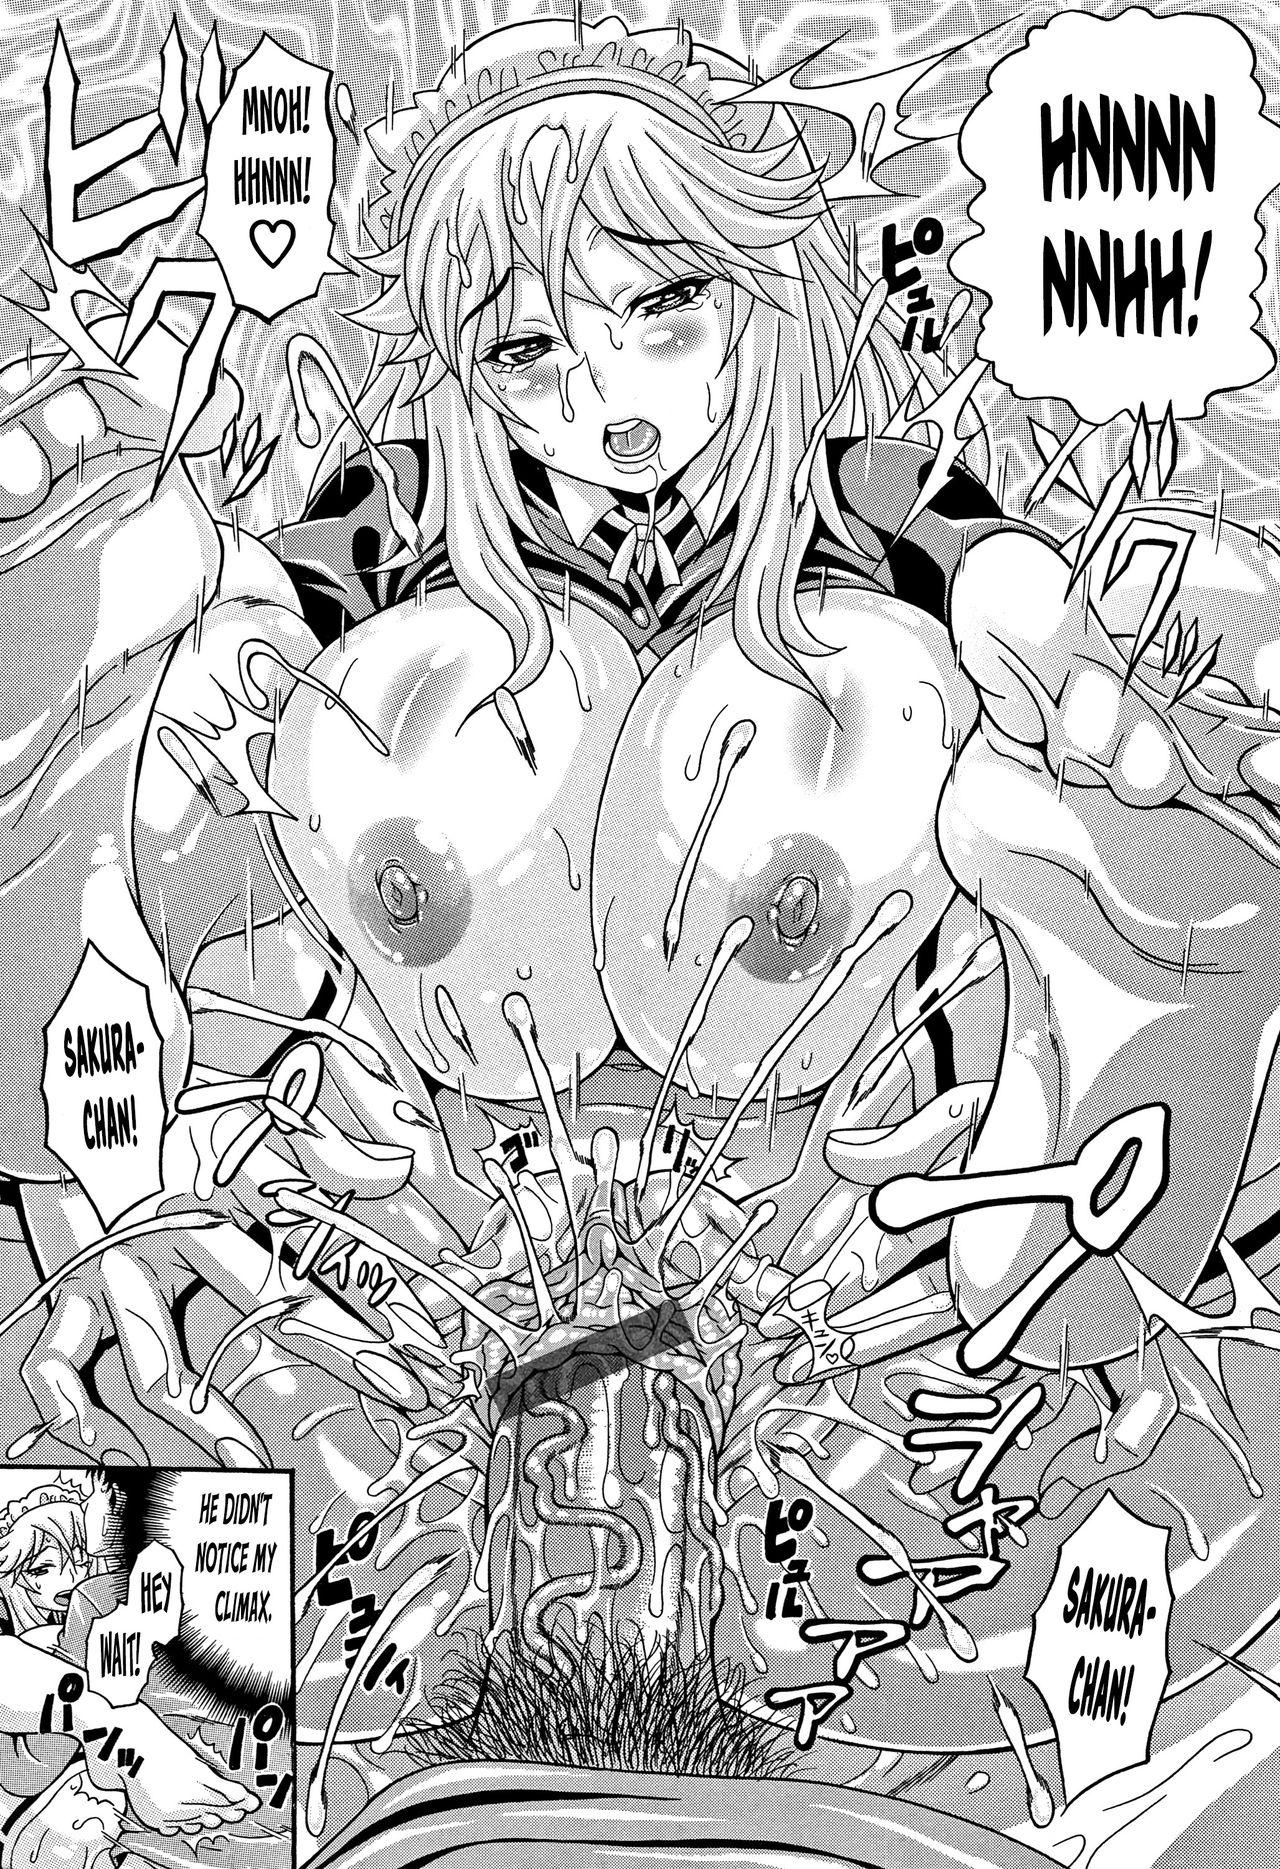 [Andou Hiroyuki] Mamire Chichi - Sticky Tits Feel Hot All Over. Ch.1-7 [English] [doujin-moe.us] 88